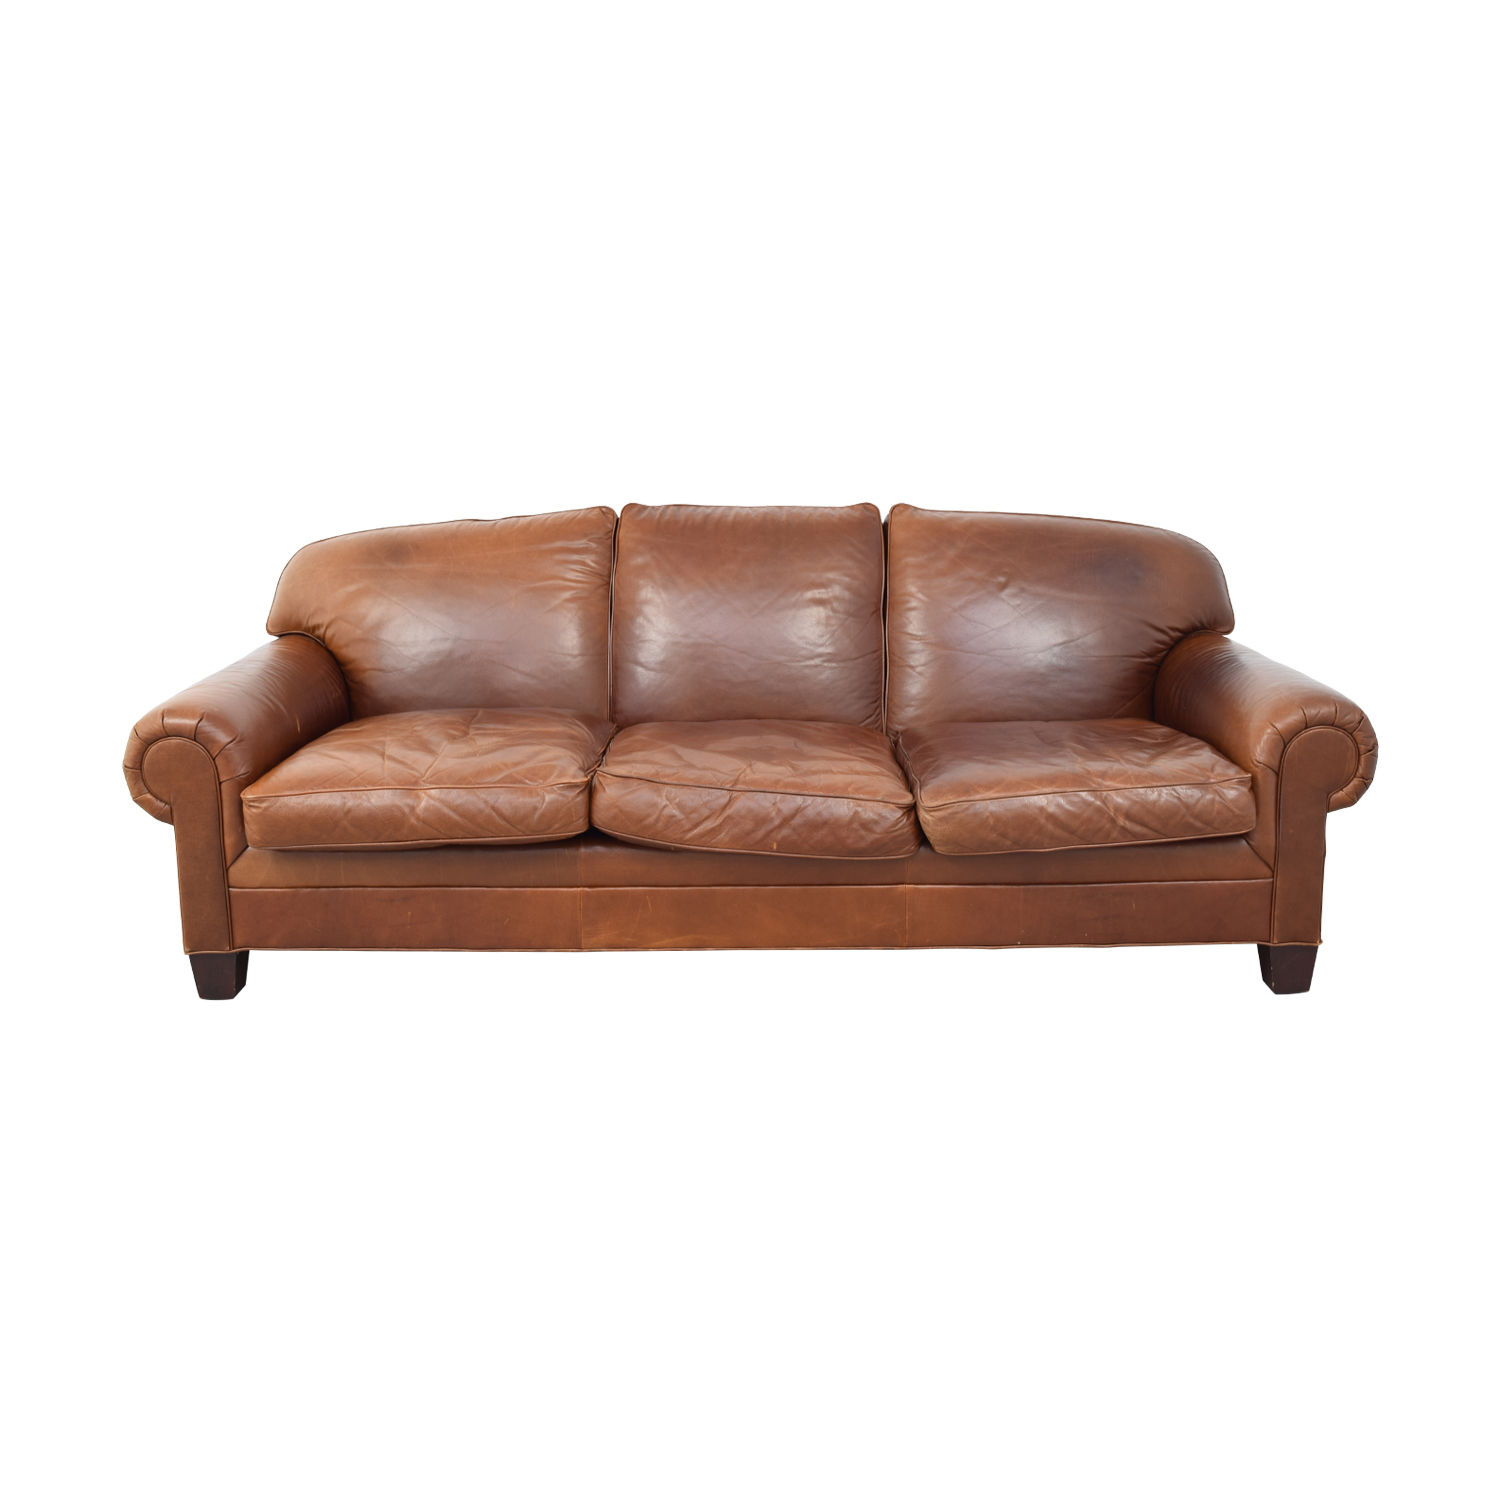 Ralph Lauren Burnt Orange Three-Cushion Couch Ralph Lauren Home